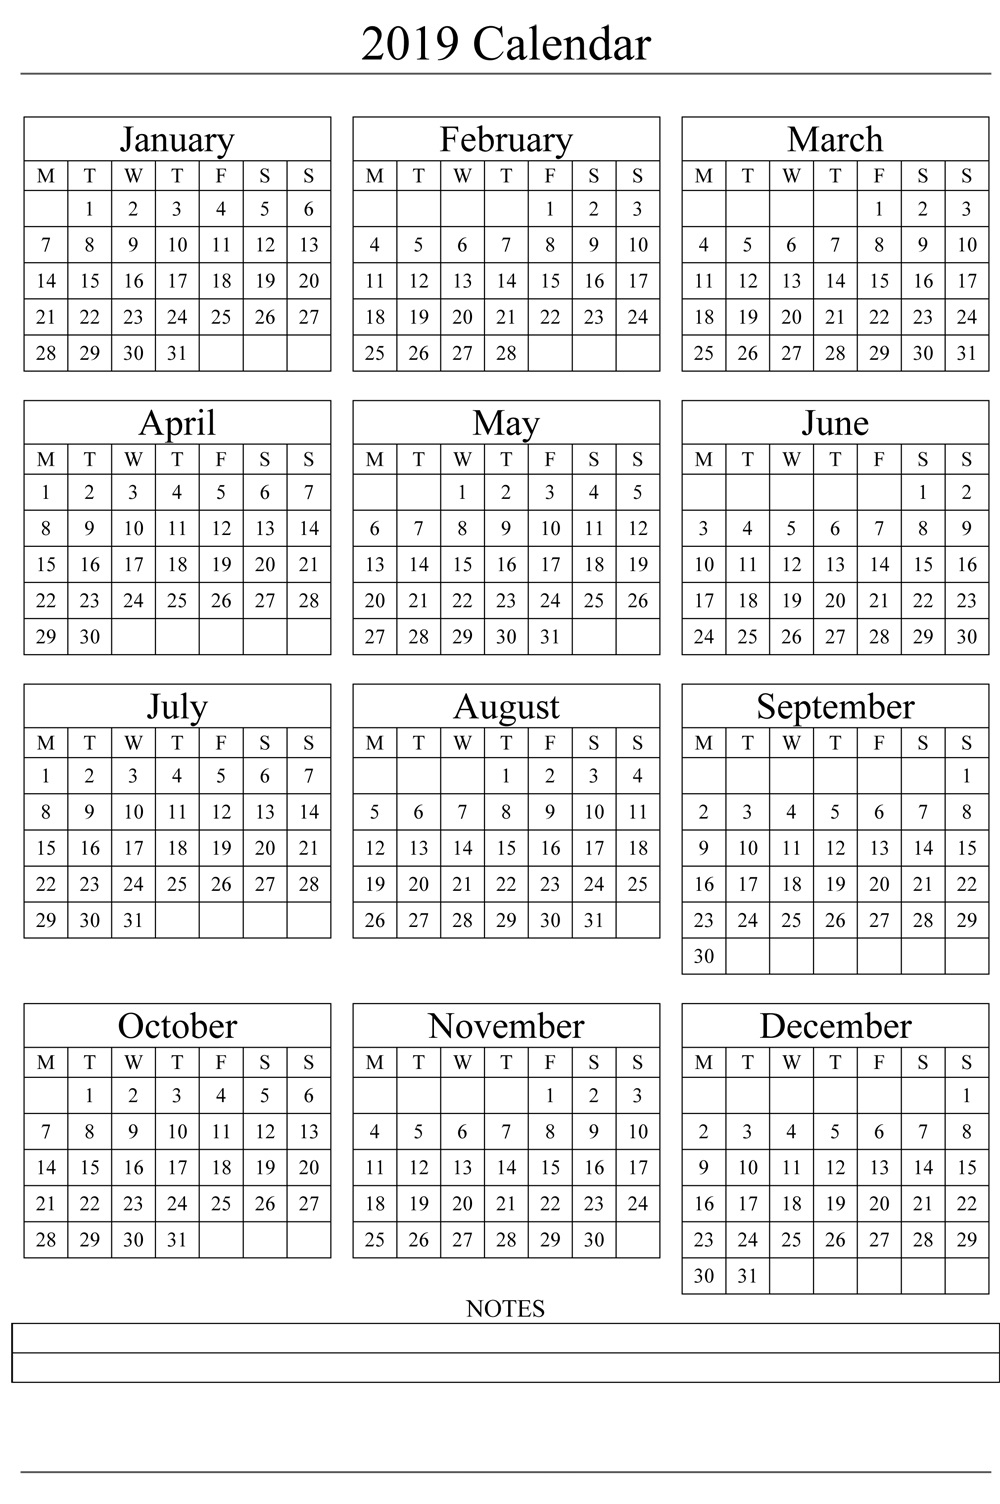 Free Printable 2019 Year Calendar With Holidays Yearly PDF Excel Word Public